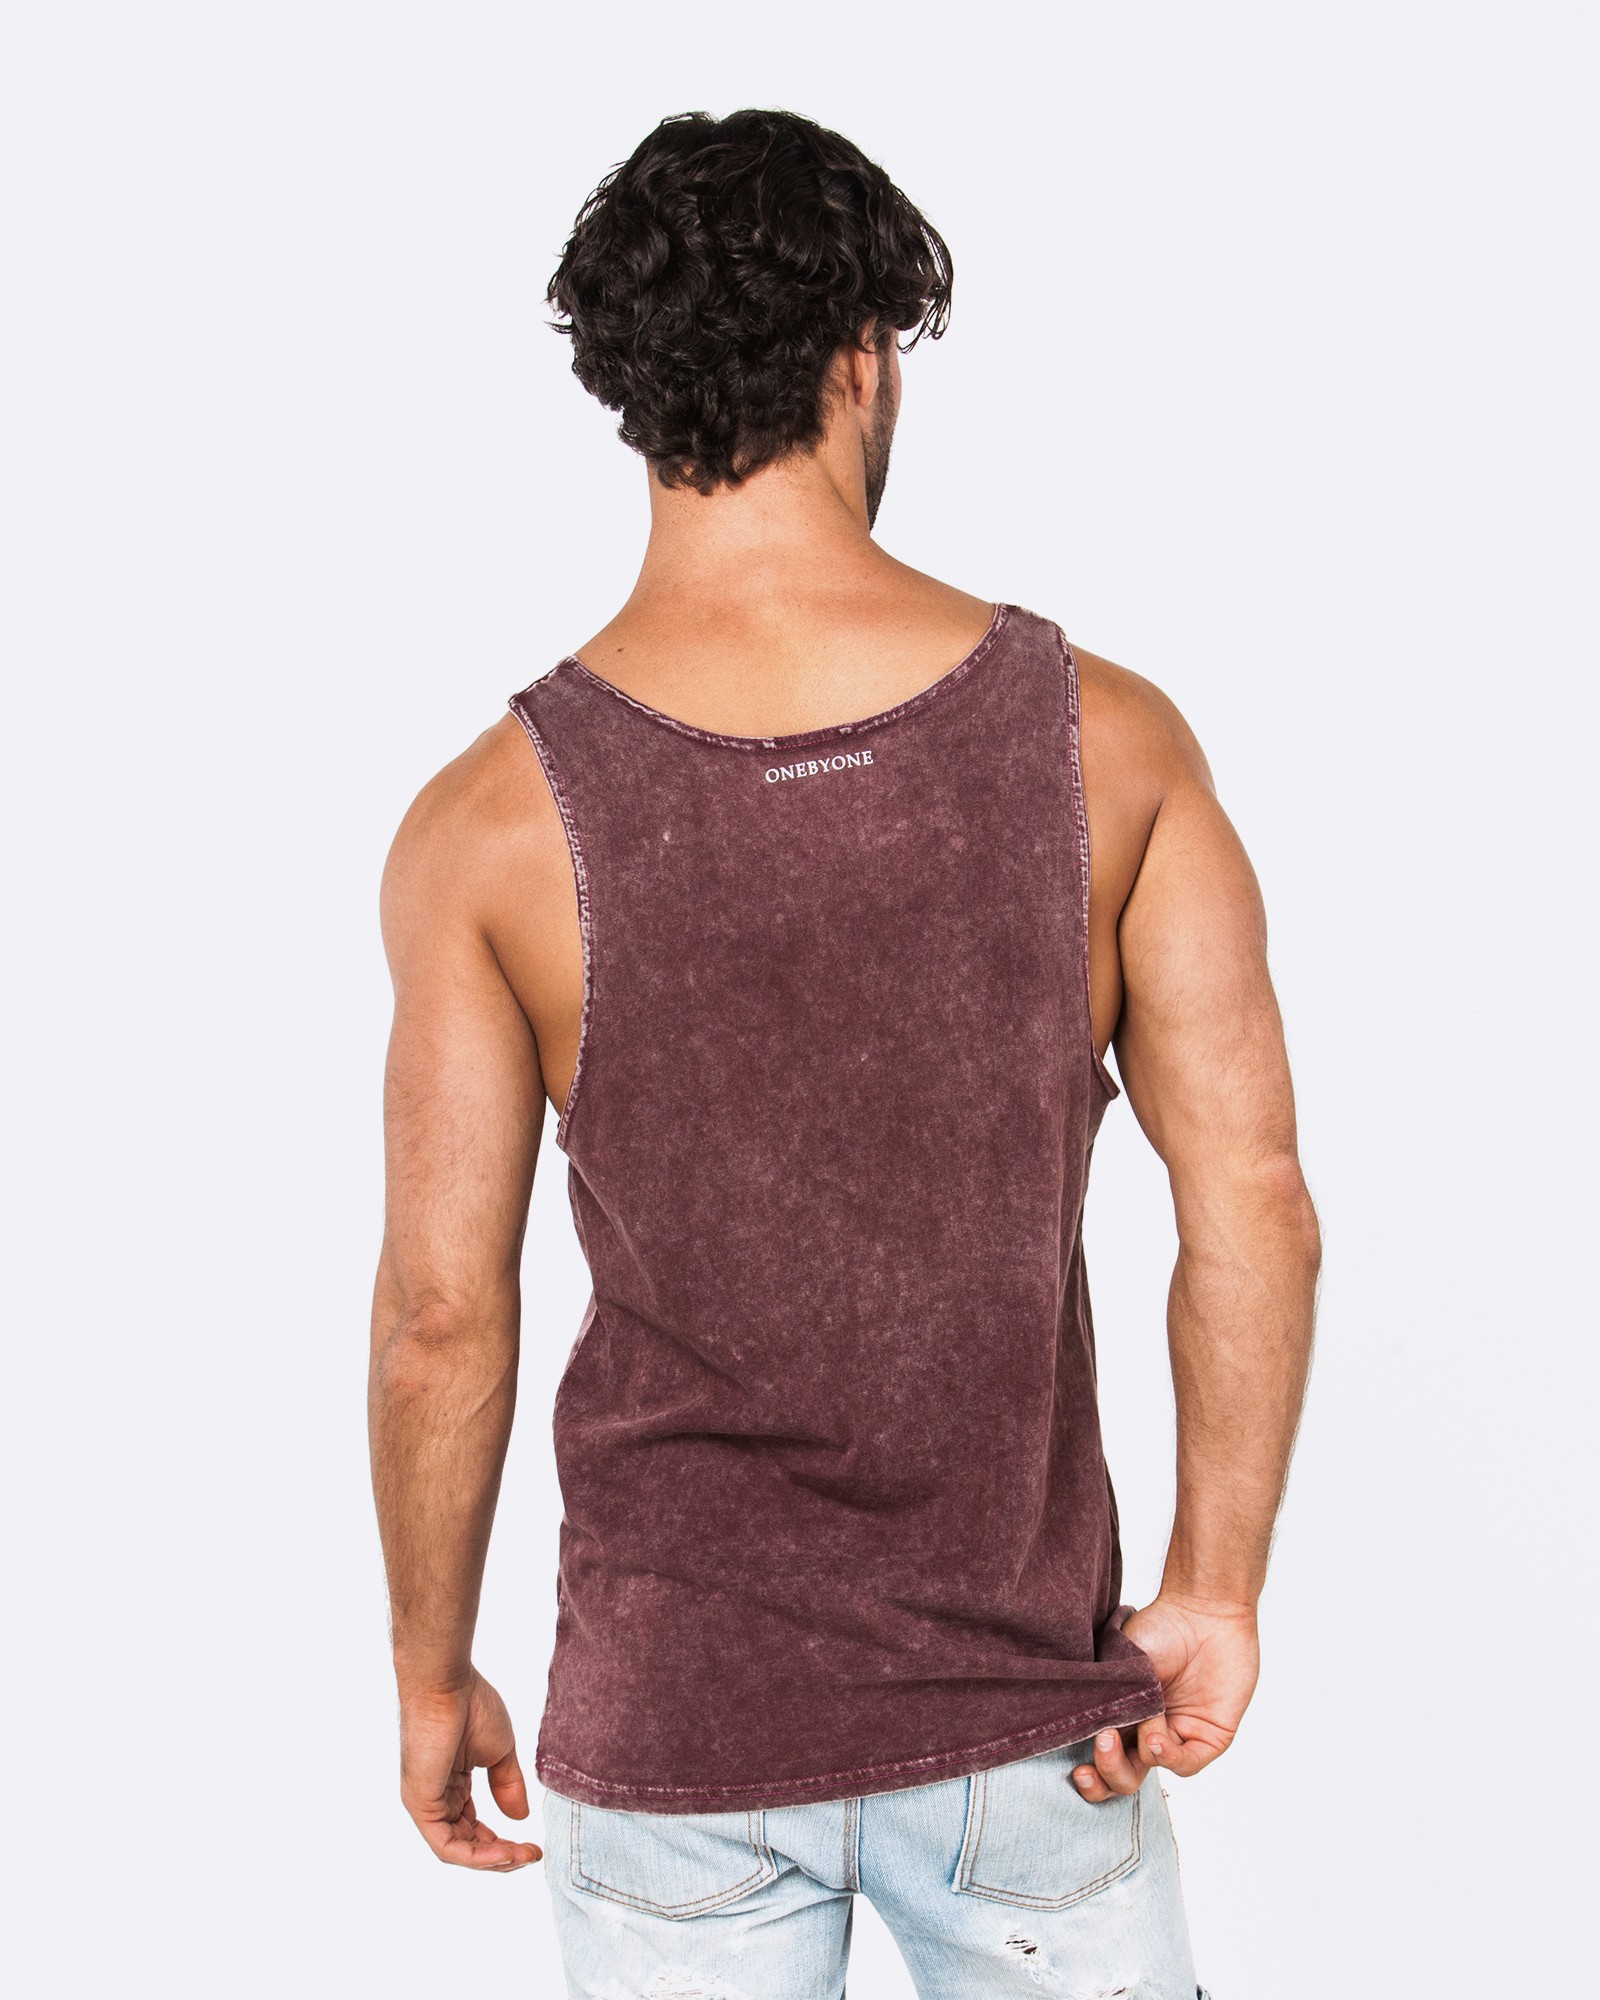 BLANK ACID BERRY SINGLET